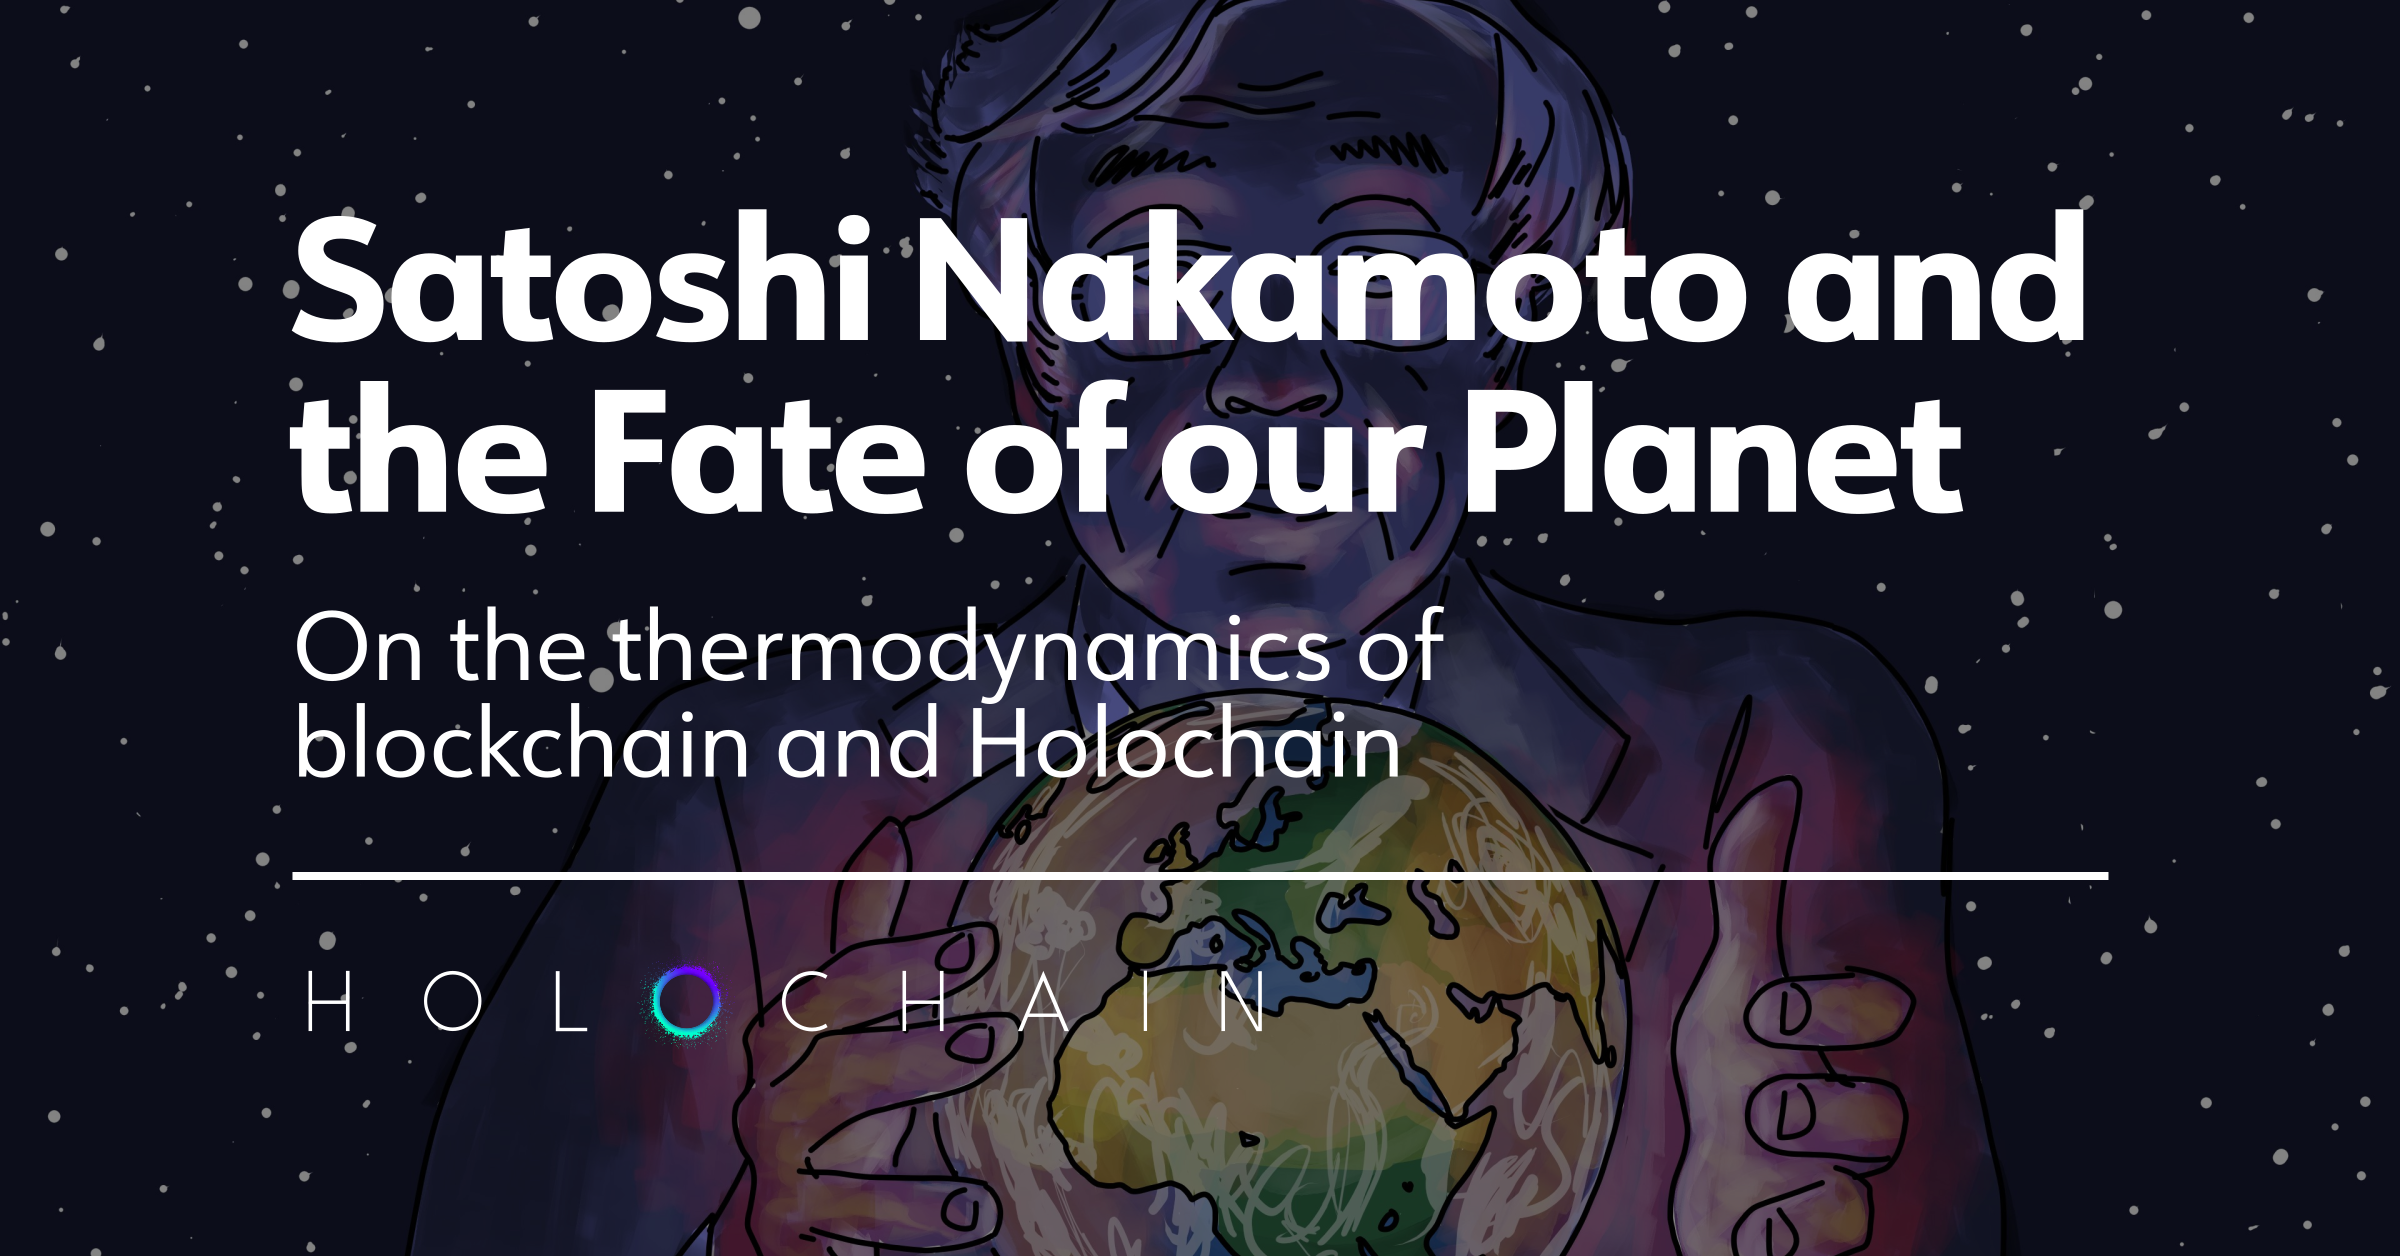 Satoshi Nakamoto and the Fate of our Planet